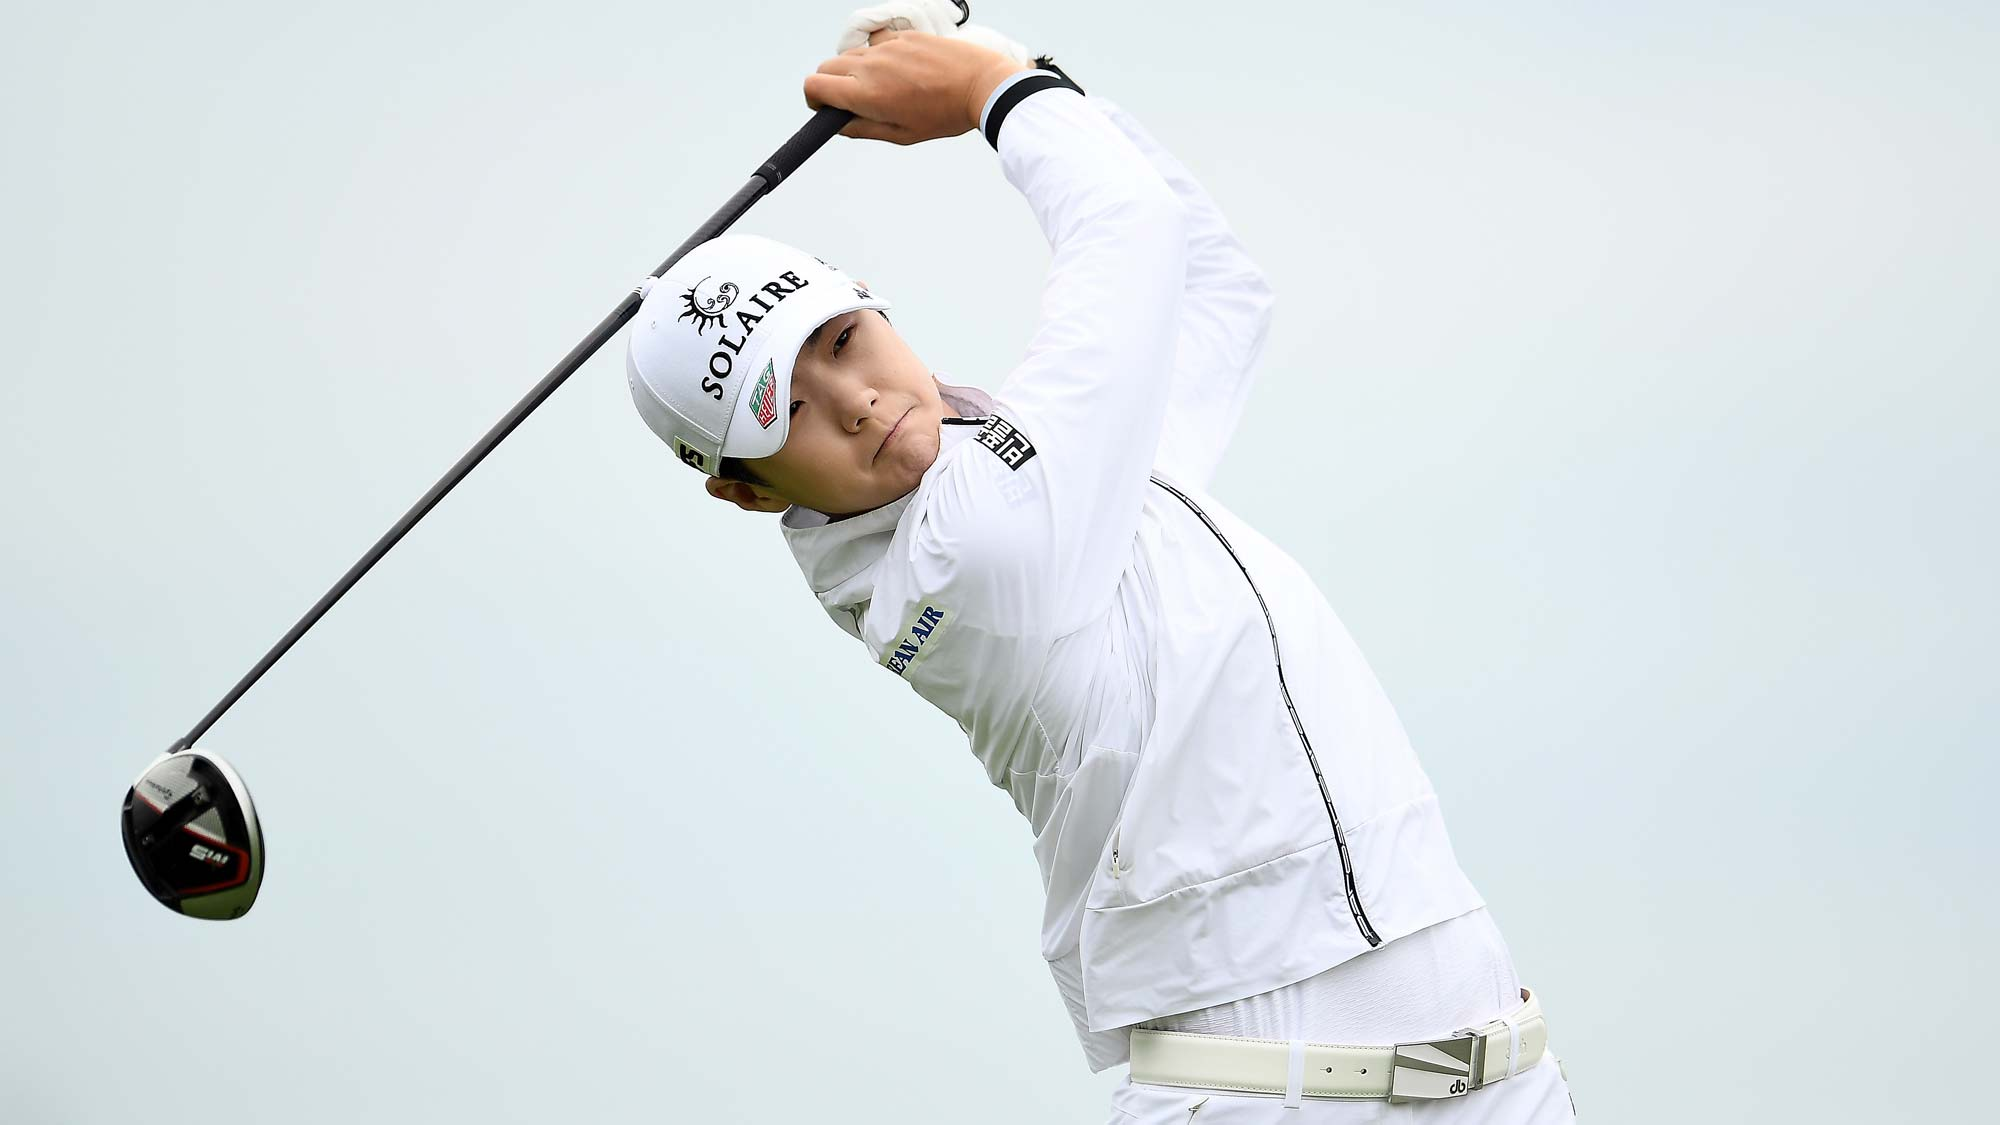 Sung Hyun Park of Korea hits her tee shot on the 11th hole during the second round of the KPMG PGA Championship